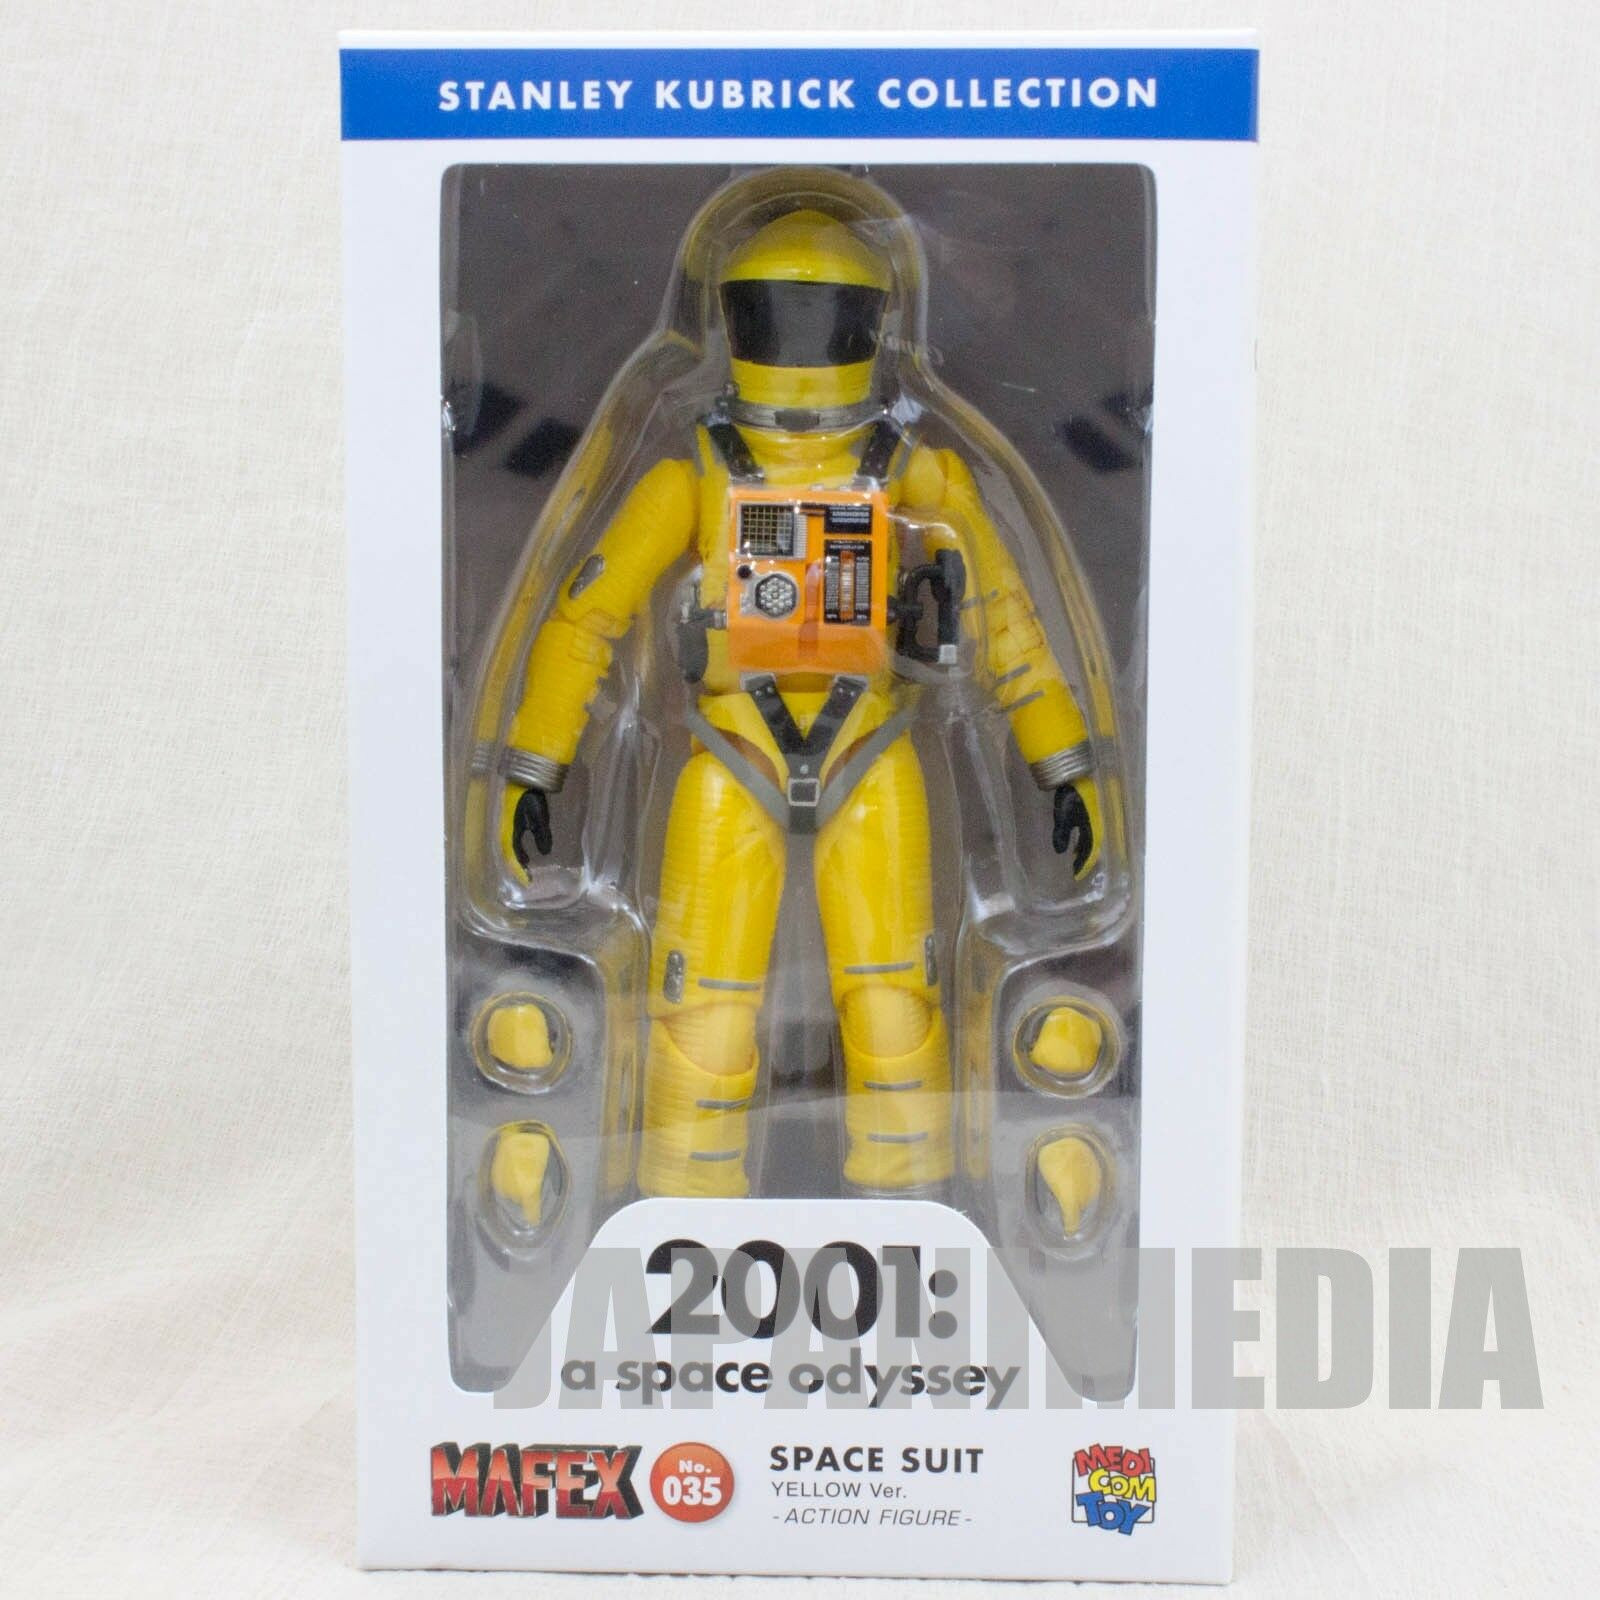 2001 A Space Odyssey Action Figure Space Suit Yellow Ver. Medicom MAFEX